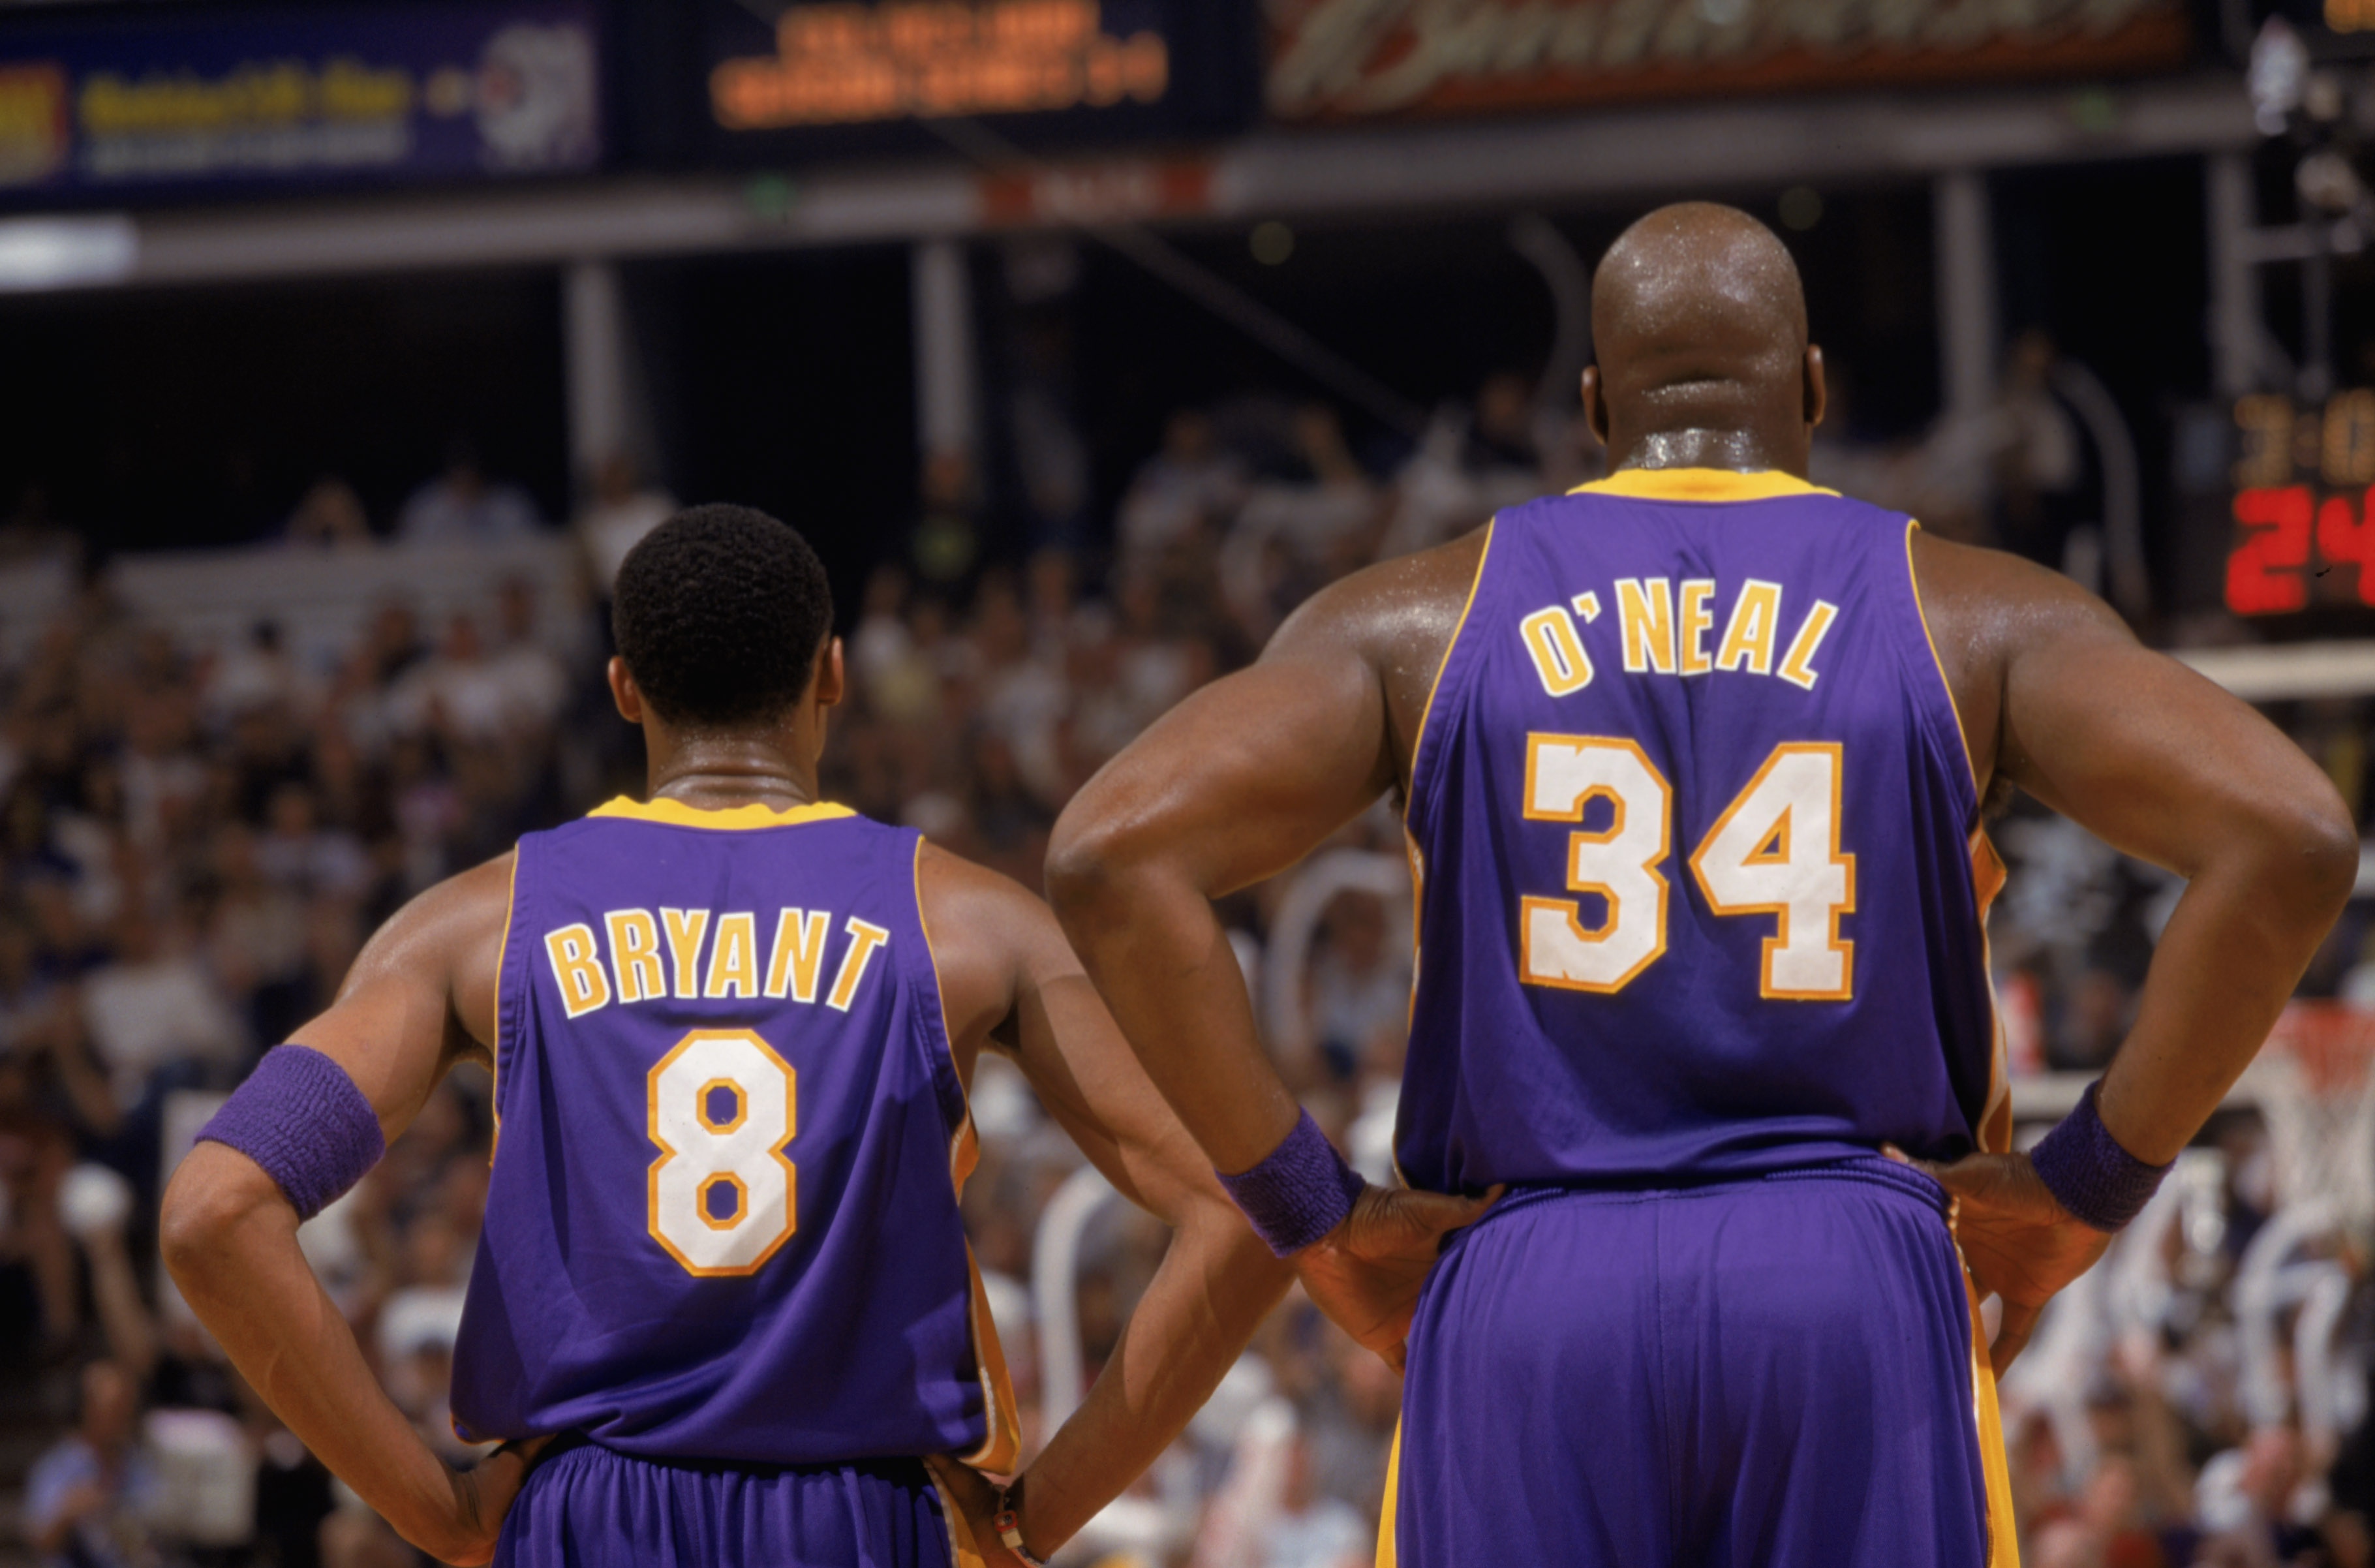 Bryant stands next to his teammate Shaquille O'Neal during game 1 of the Western Conference Finals during the 2002 NBA Playoffs against the Sacramento Kings at the Arco Arena in Sacramento on May 18, 2002. The duo would be continue their dominance of the NBA, with the 2002 Championship being the last they'd win together. O'Neal was traded to the Miami Heat in 2004, while Bryant signed a new seven-year contract with the Lakers.